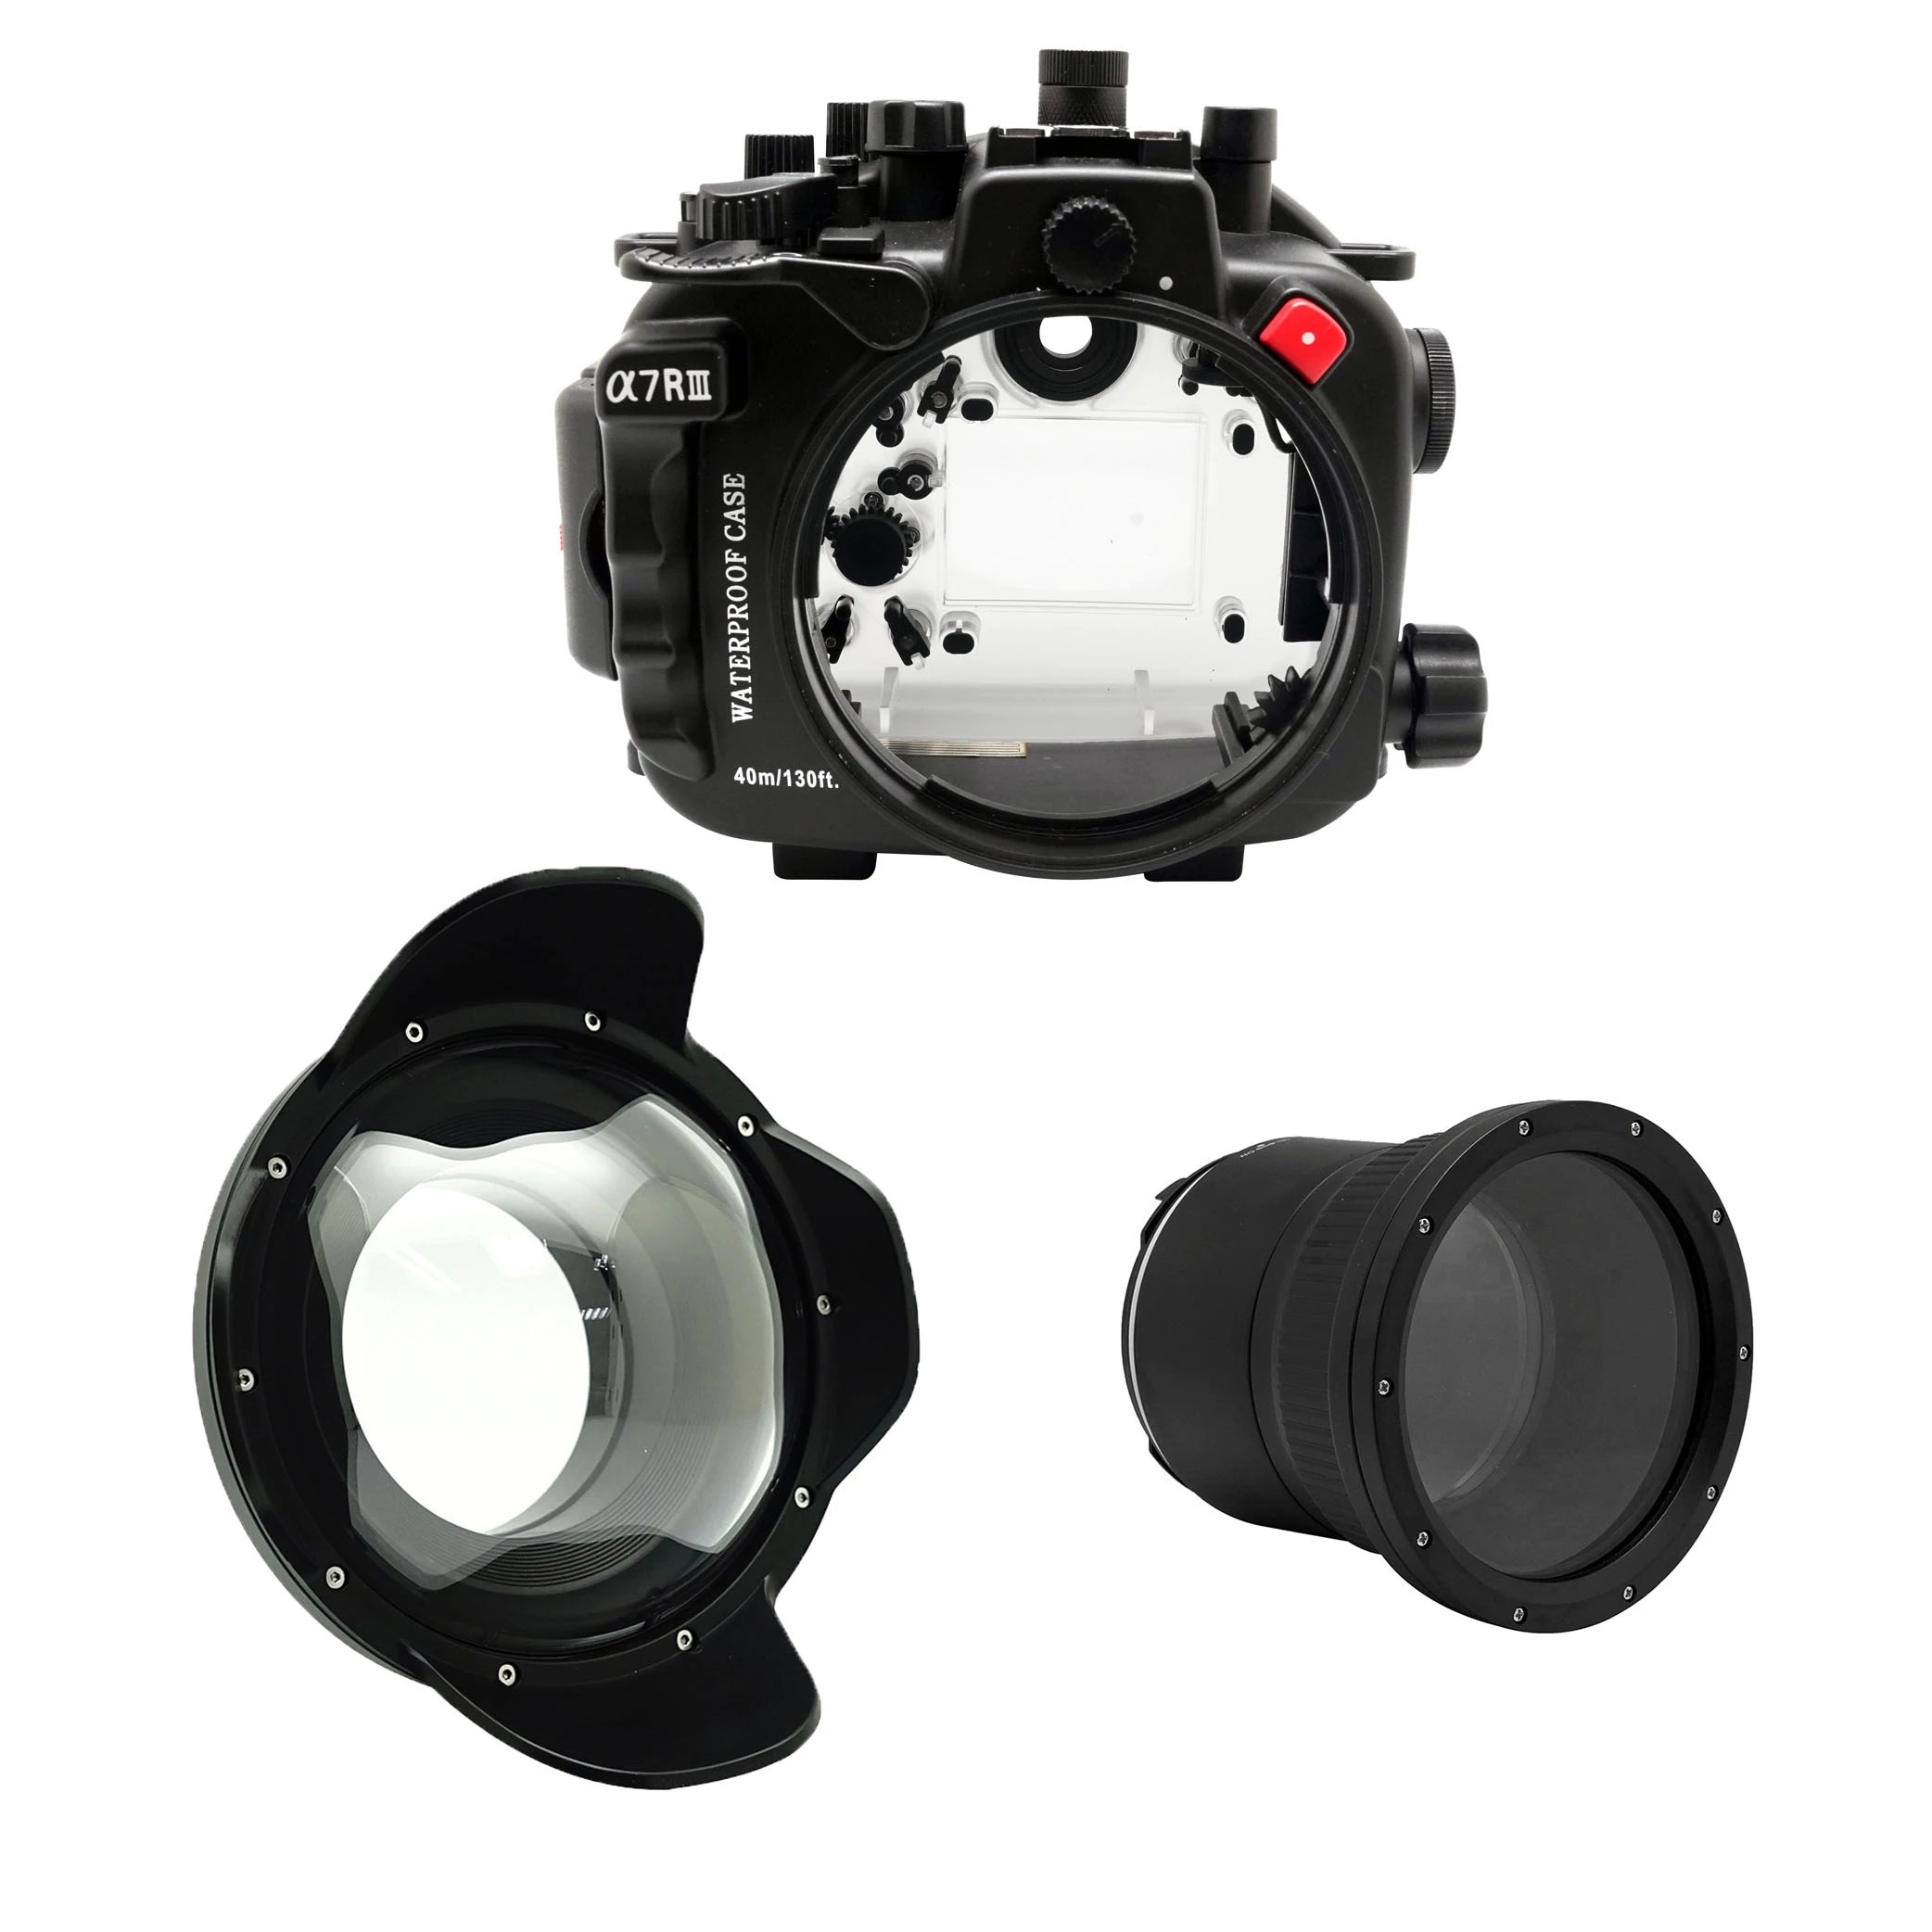 Seafrogs 40m 130ft Underwater Camera Housing Case for Sony A7III A7 III A7M3 A7R III with 90mm f/2.8 <font><b>Sigma</b></font> <font><b>35mm</b></font> f/<font><b>1.4</b></font> image